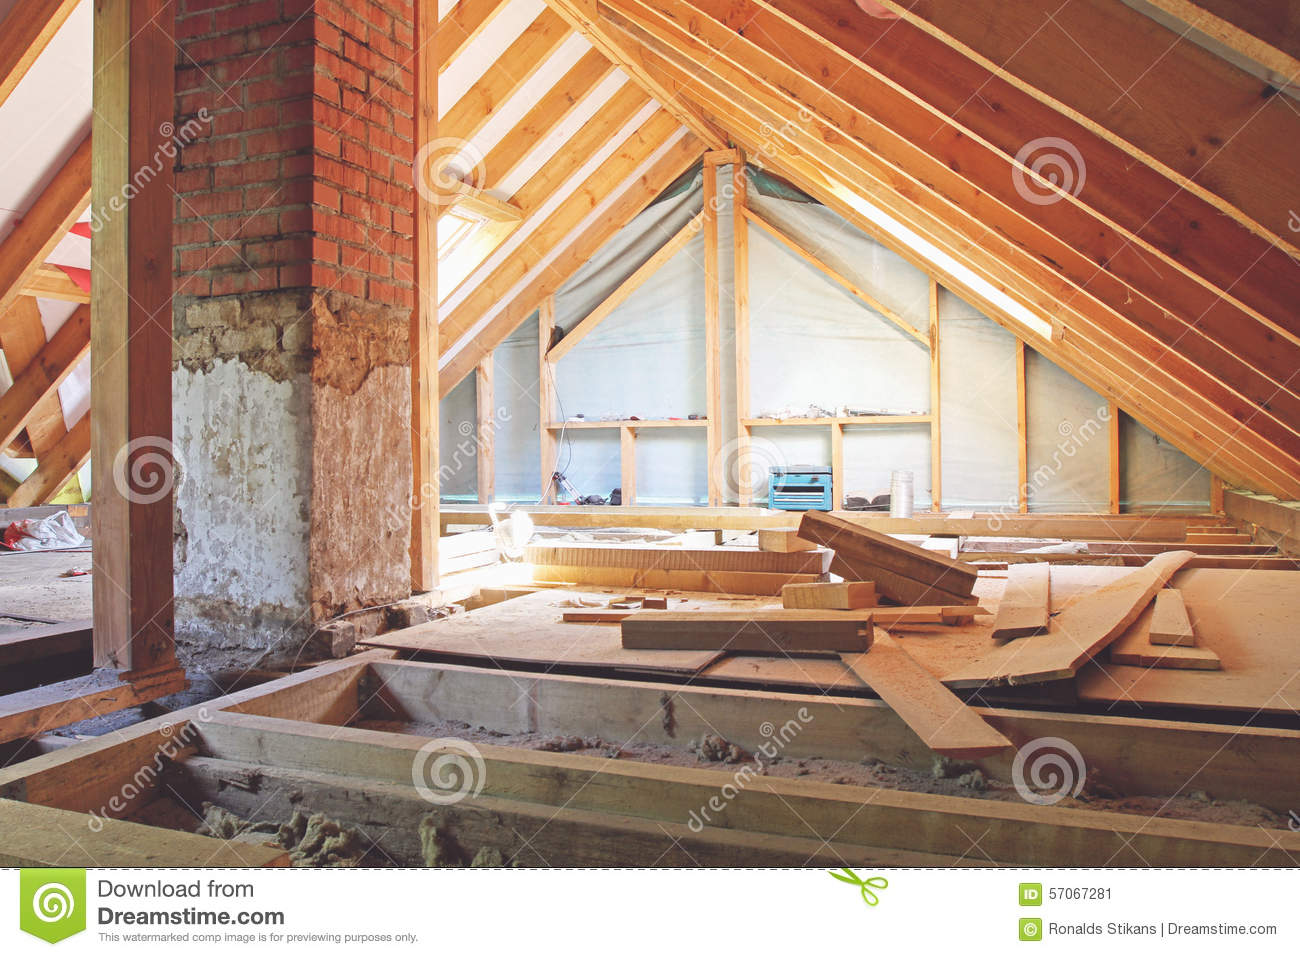 Grenier de chambre en construction photo stock image - Construction chambre de culture ...